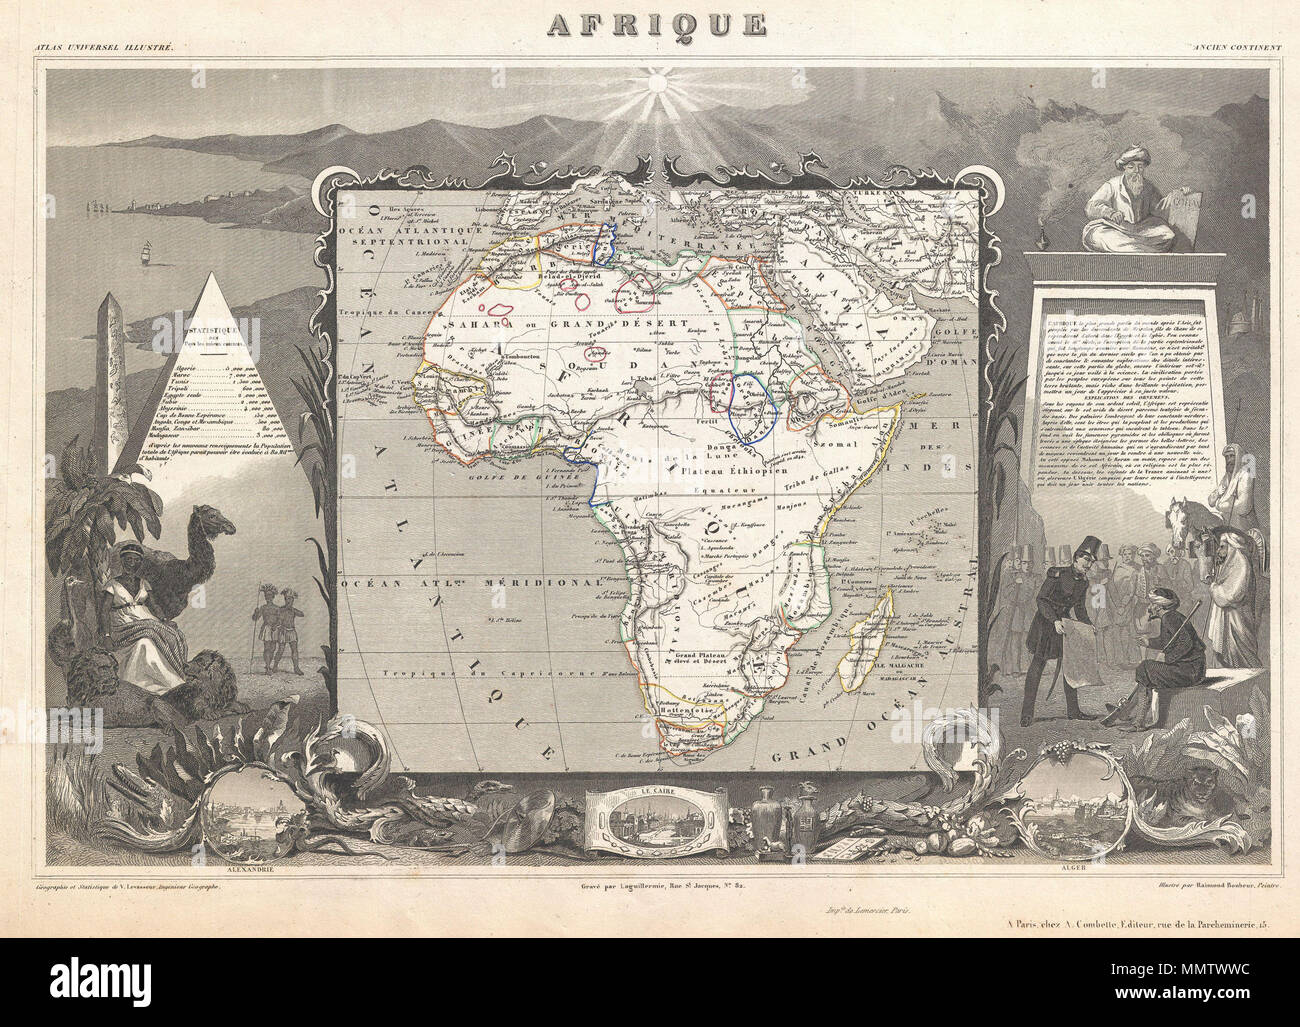 .  English: A stunning c. 1847 map of Africa by French cartographer Victor Levasseur. Depicts the entire continent with several interesting elements. A large lake appears in Mozambique which can only be Lake Malawi (Lake Nyasa). Lake Chad (Tchad) is also shown. Names numerous African kingdoms including Monomotapa and the Hottentots. Surrounded by the elaborate borders for which Levasseur is best known. Shows a stylized pyramid and obelisk, an imam, a French soldier consulting with Arabs, and three city vies: Alexandria, Cairo and Algiers. Prepared and published for V. Levasseur's magnificent c - Stock Image